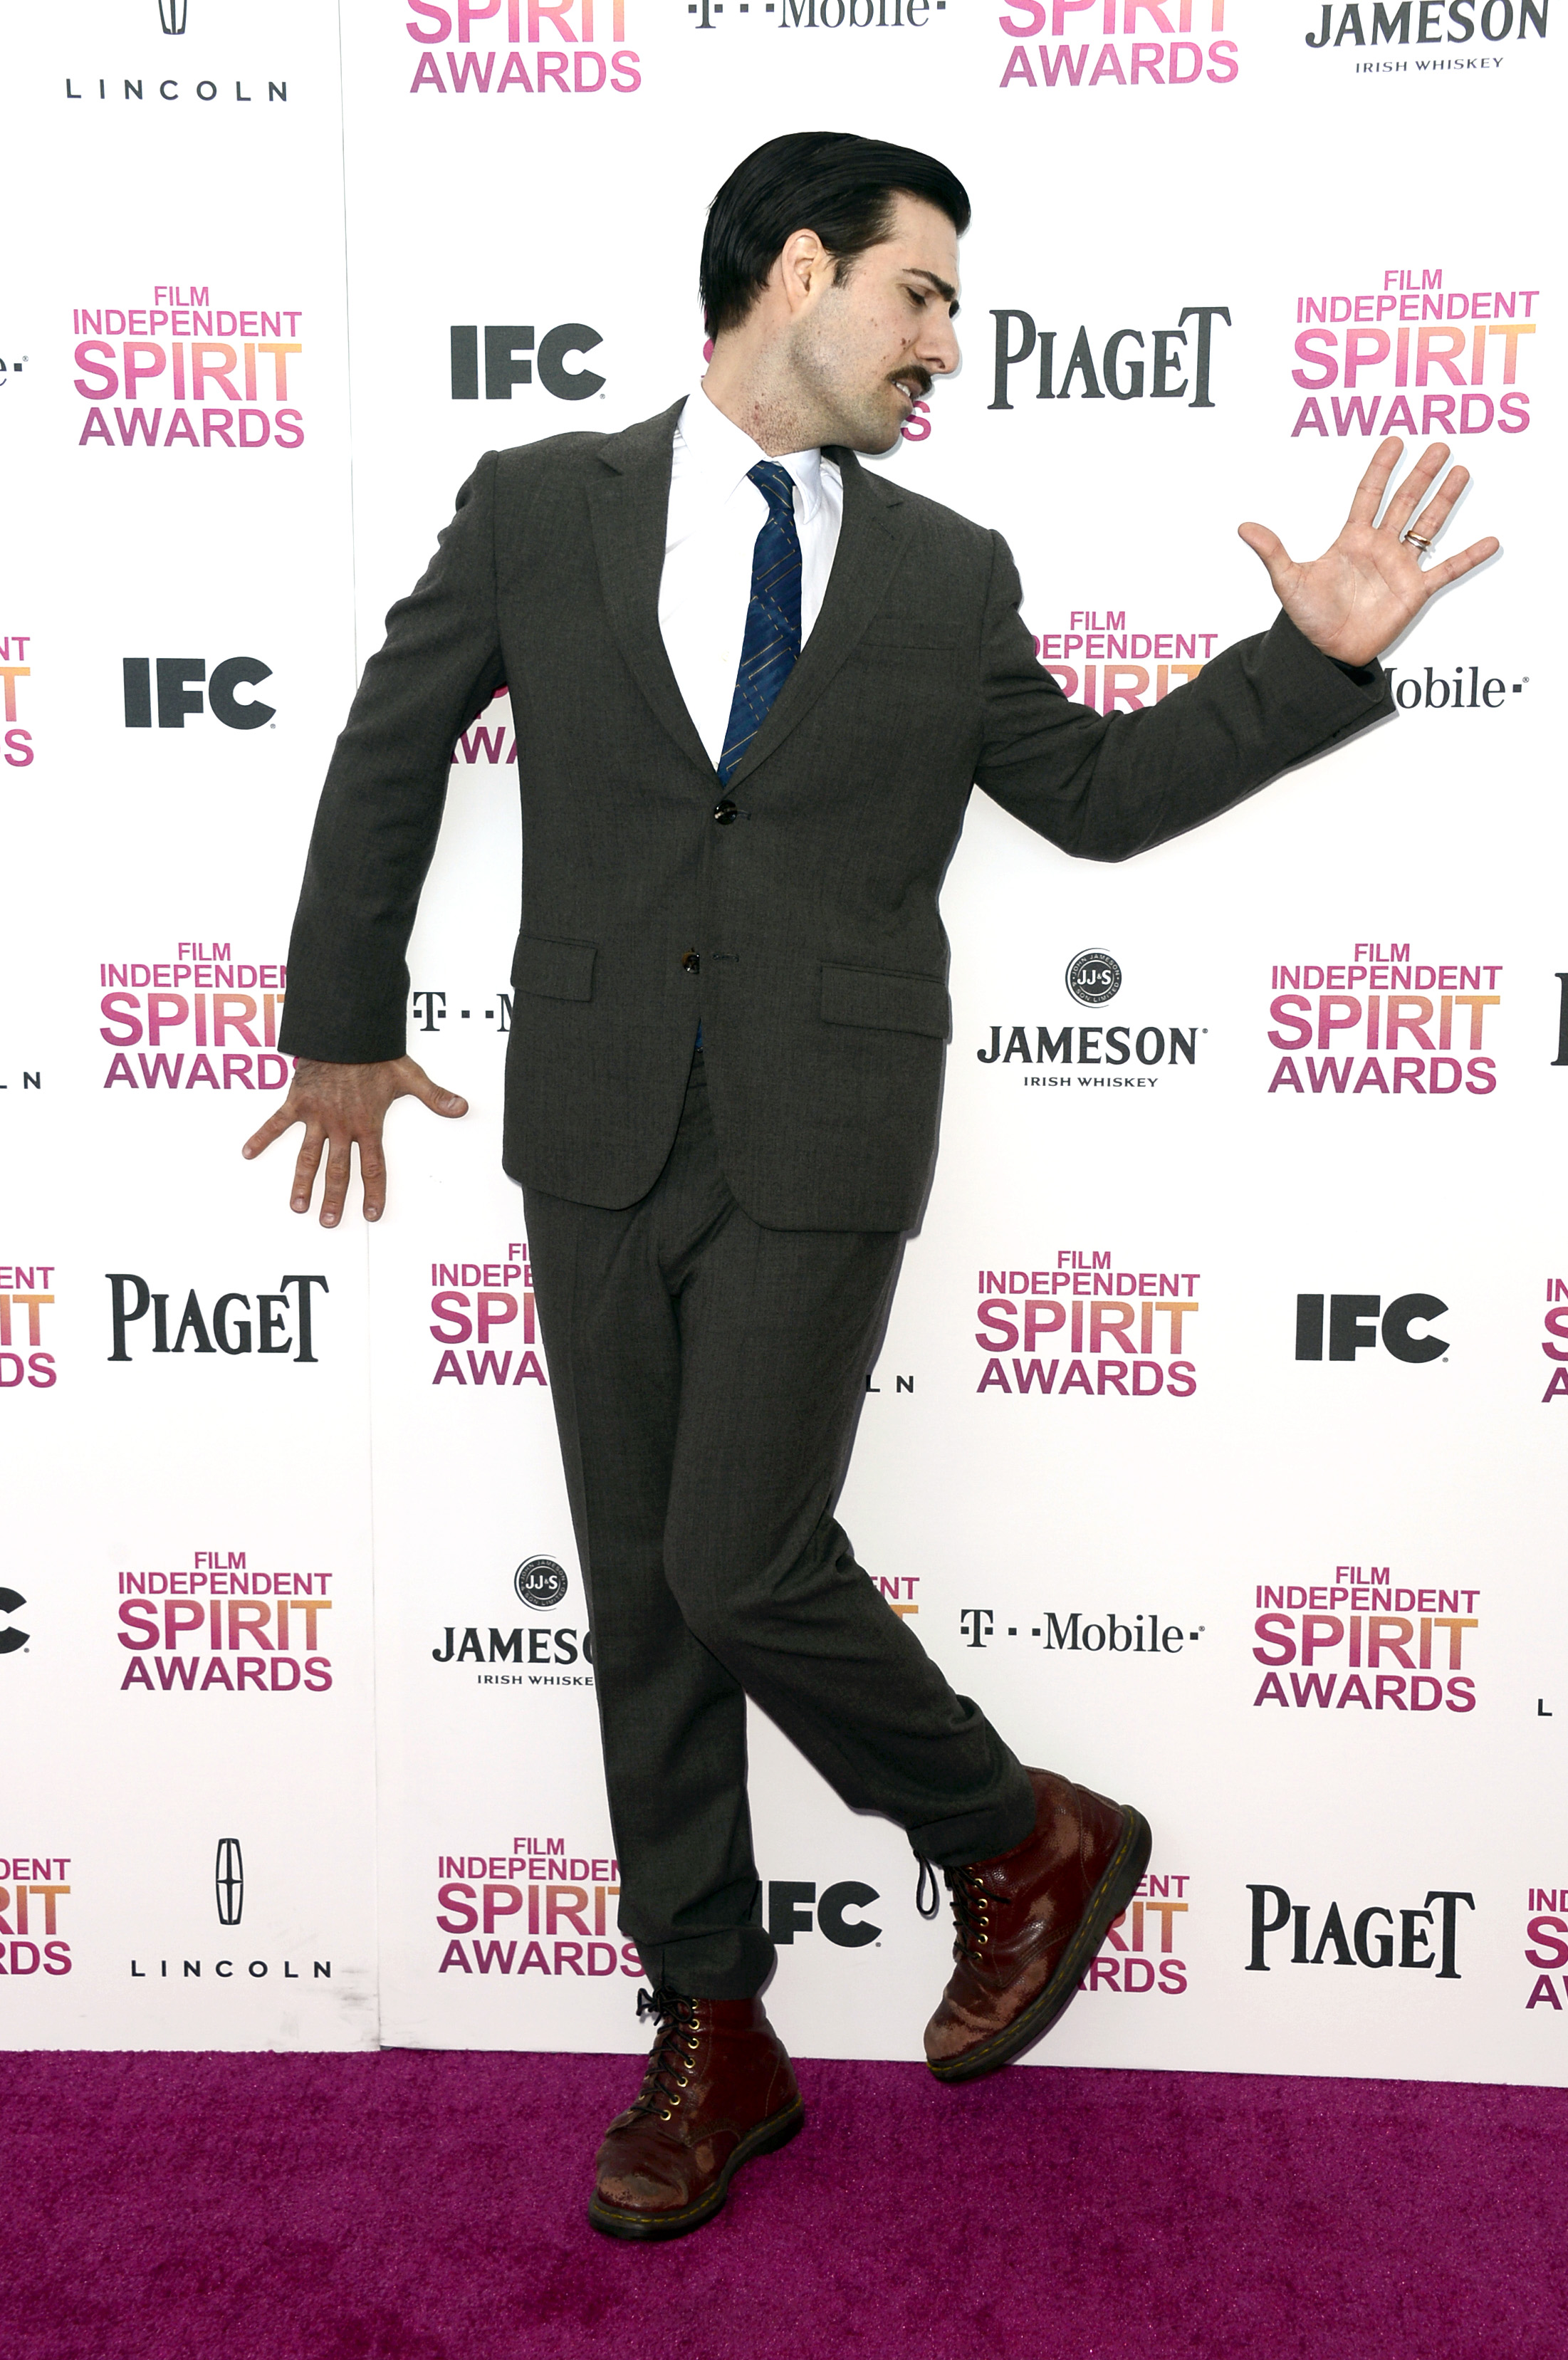 Jason Schwartzman on the red carpet at the Spirit Awards 2013.